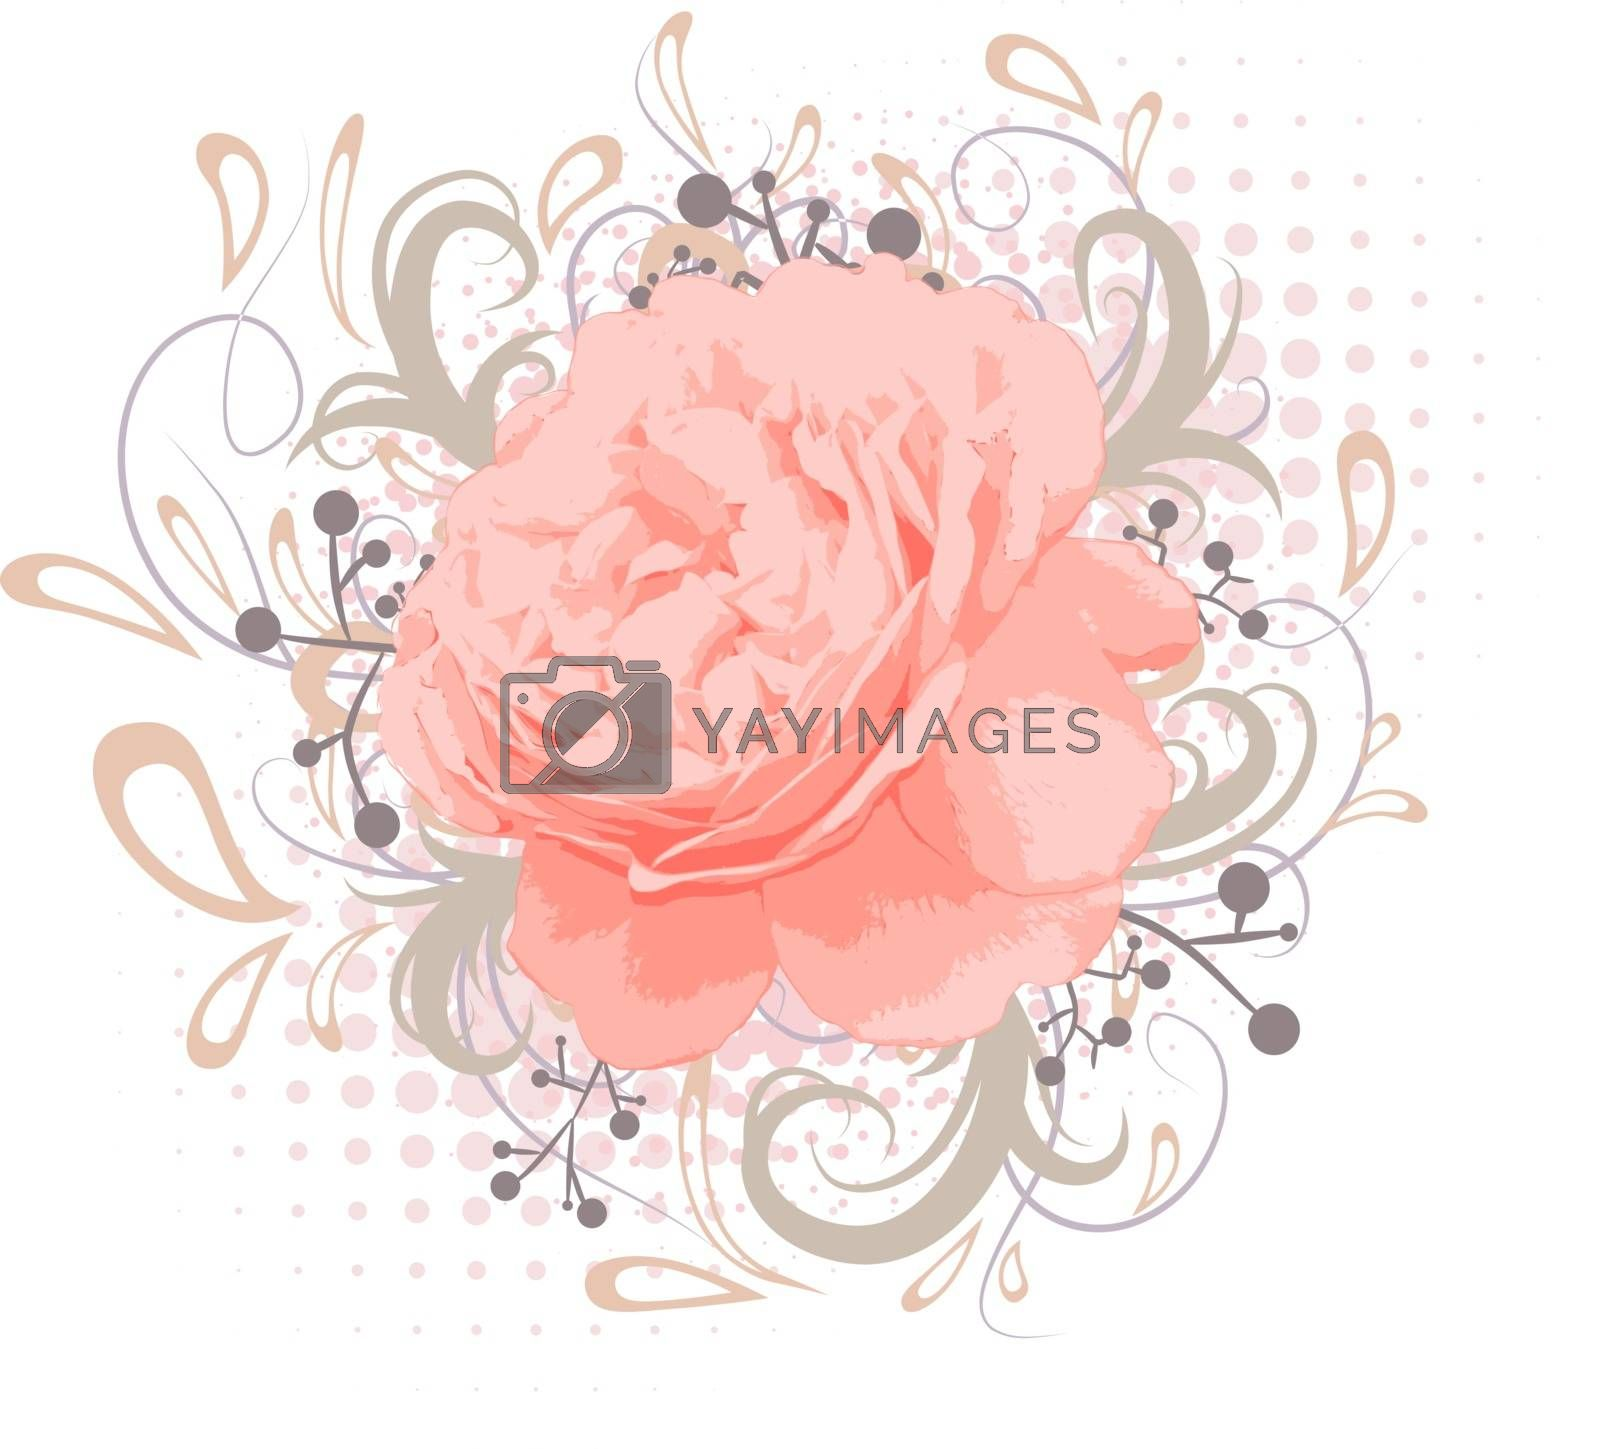 Vintage Abstract Peony Flower With Floral decoration Over White